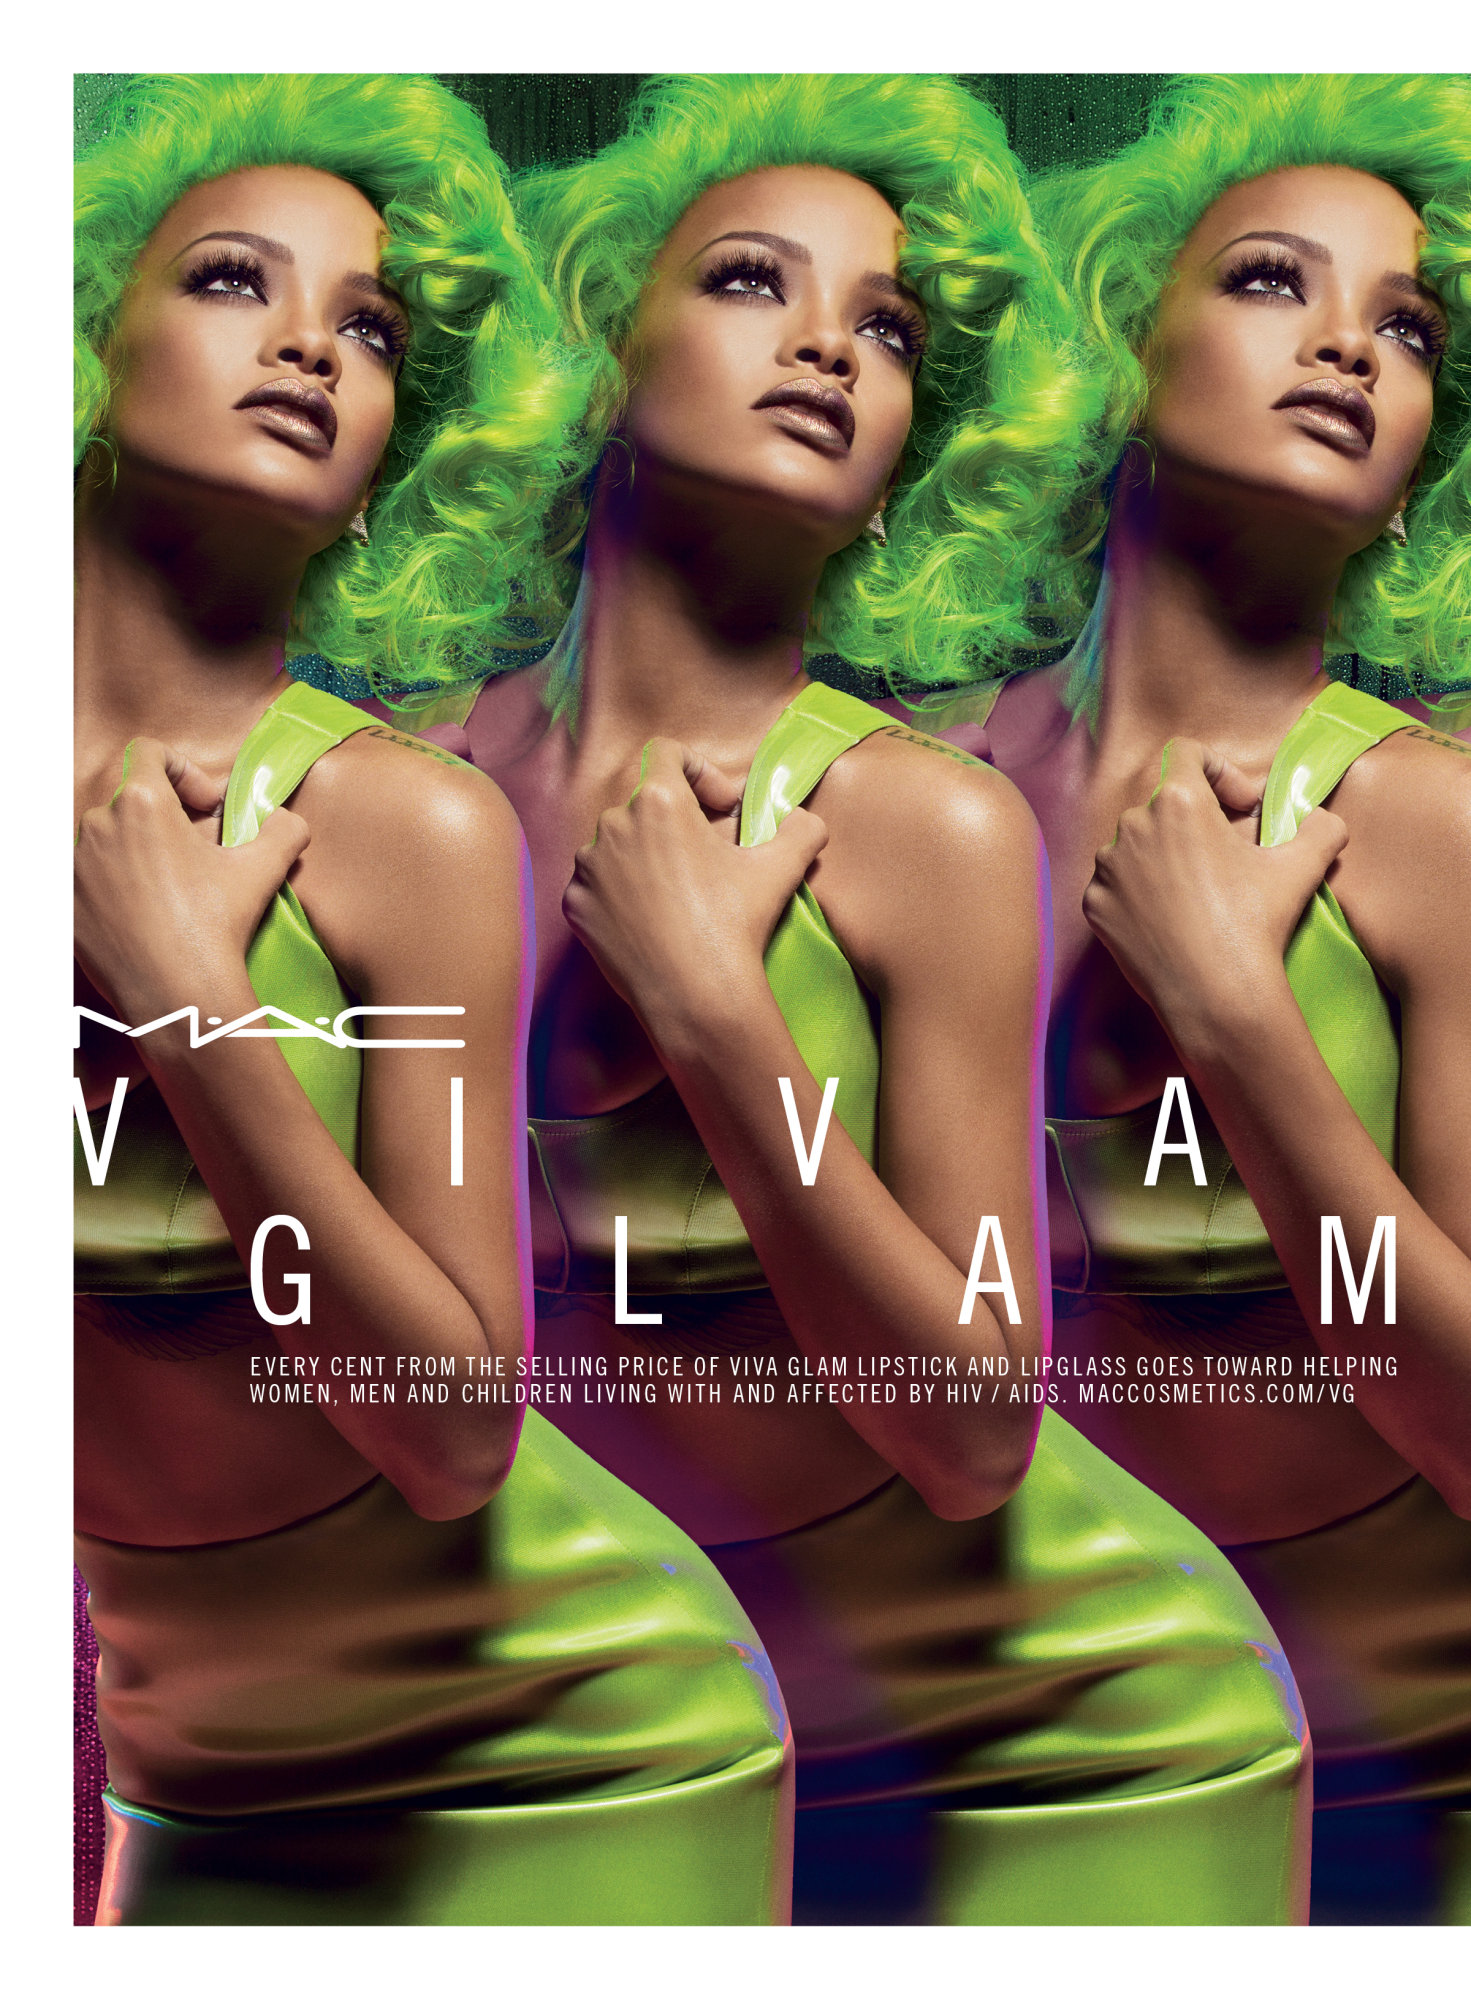 Mac Cosmetic Lipstick Fresh Brew 100 Authentic: Rihanna Goes Green: Singer Launches MAC Viva Glam Lipstick